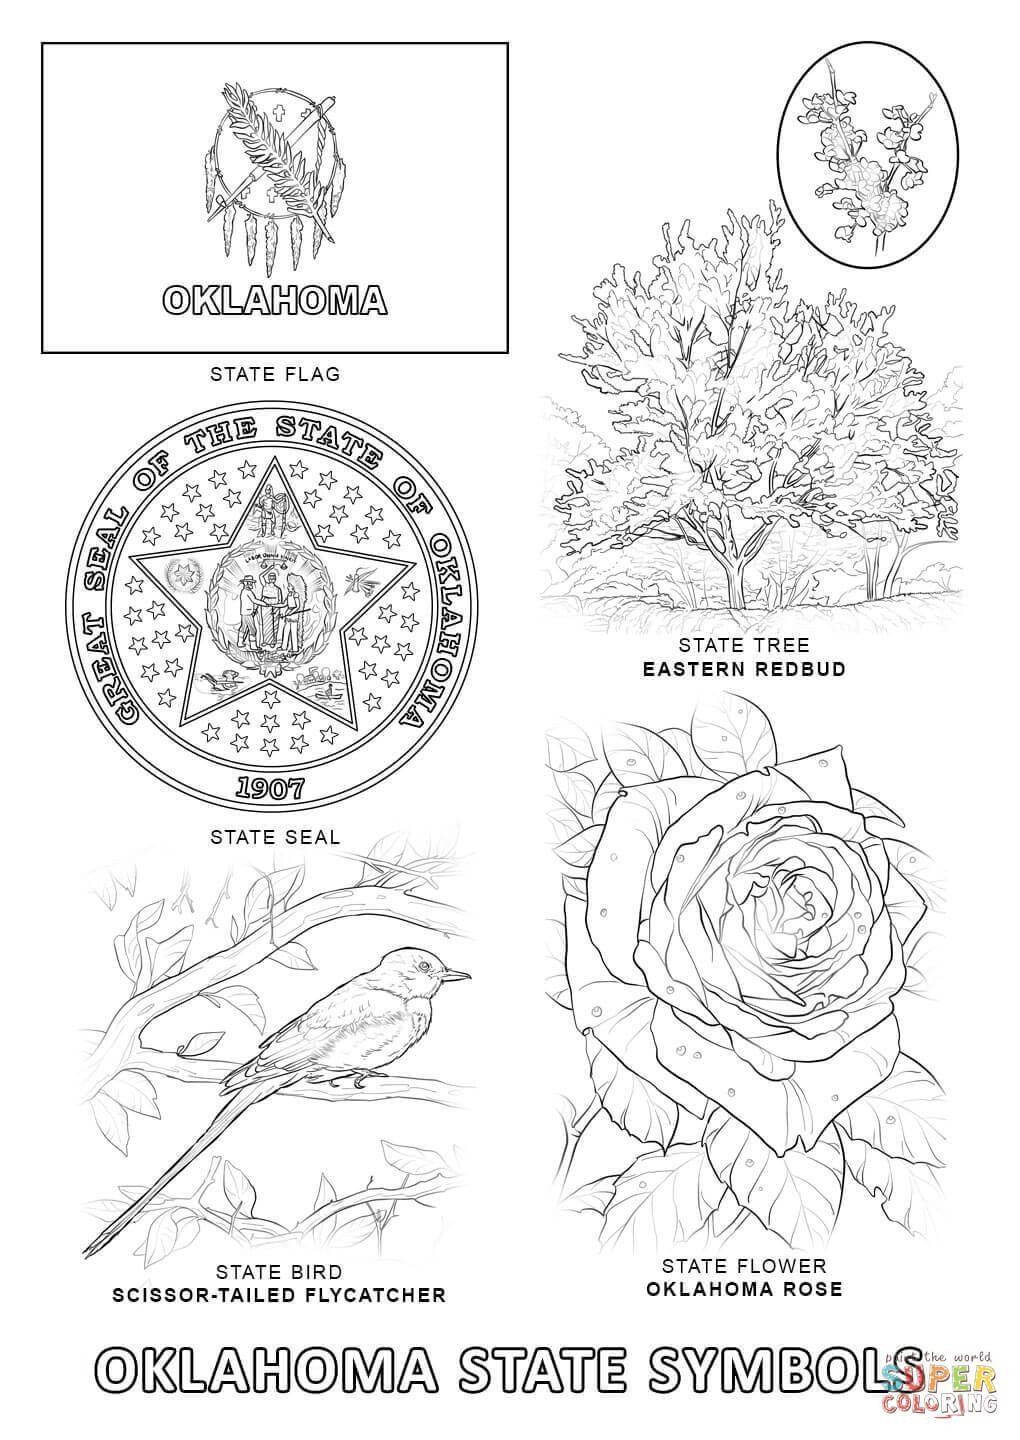 Oklahoma State Flag Coloring Page Oklahoma State Symbols Coloring Page With Images In 2020 Bird Coloring Pages Flag Coloring Pages Coloring Pages